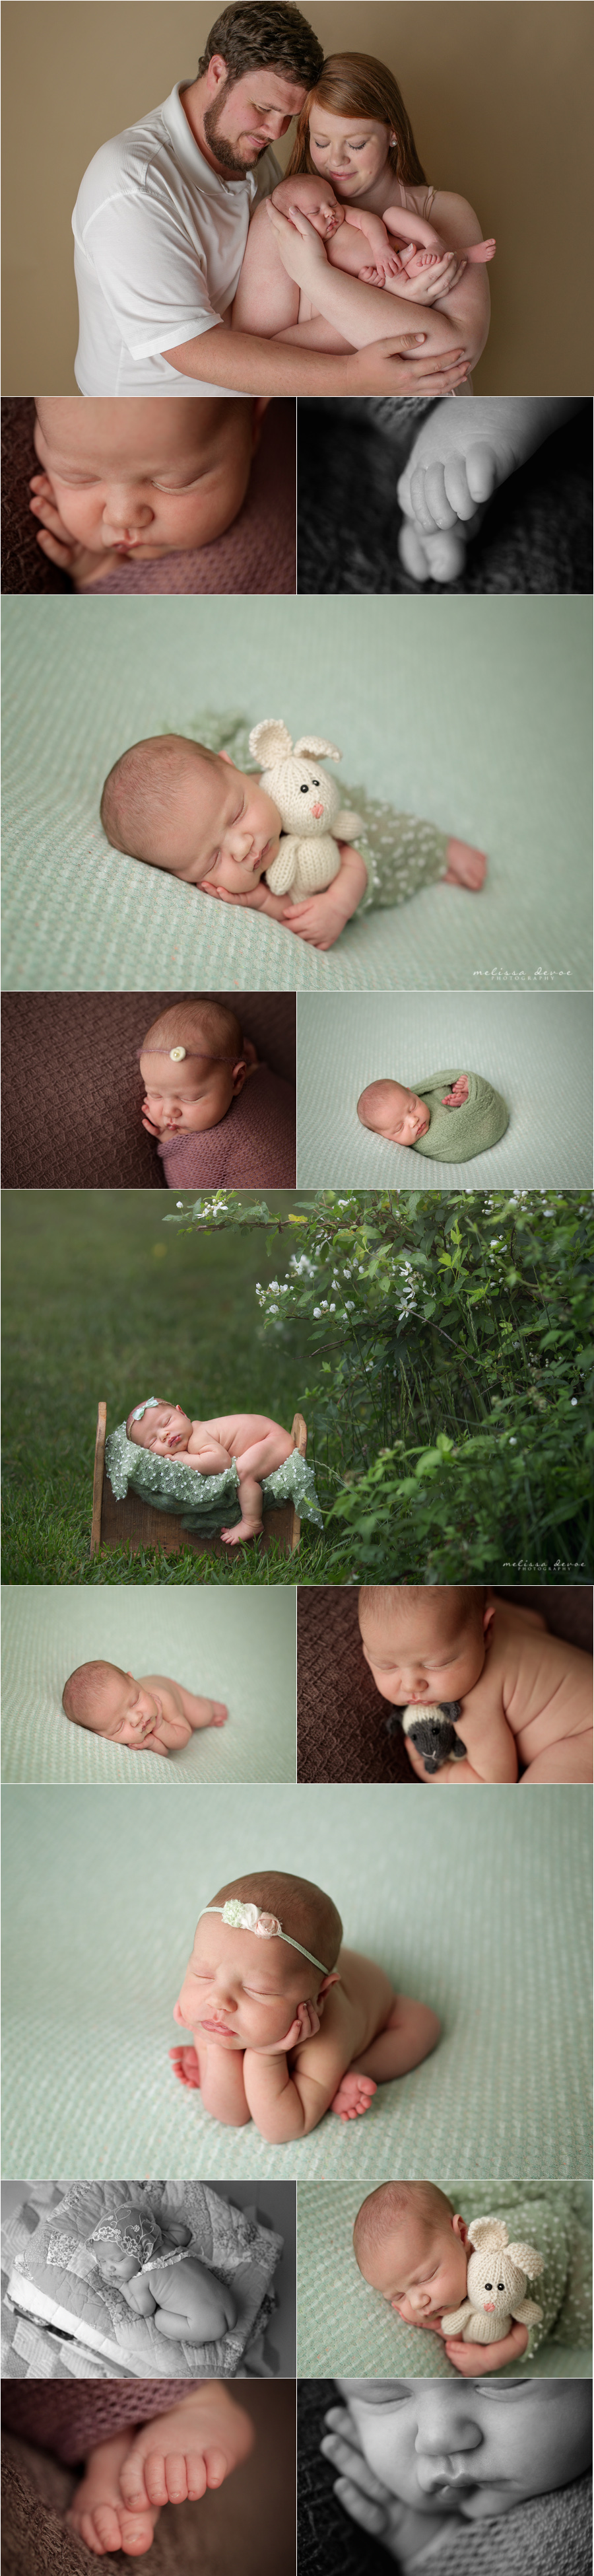 Melissa DeVoe Photography Raleigh Baby and Newborn Photographer 1